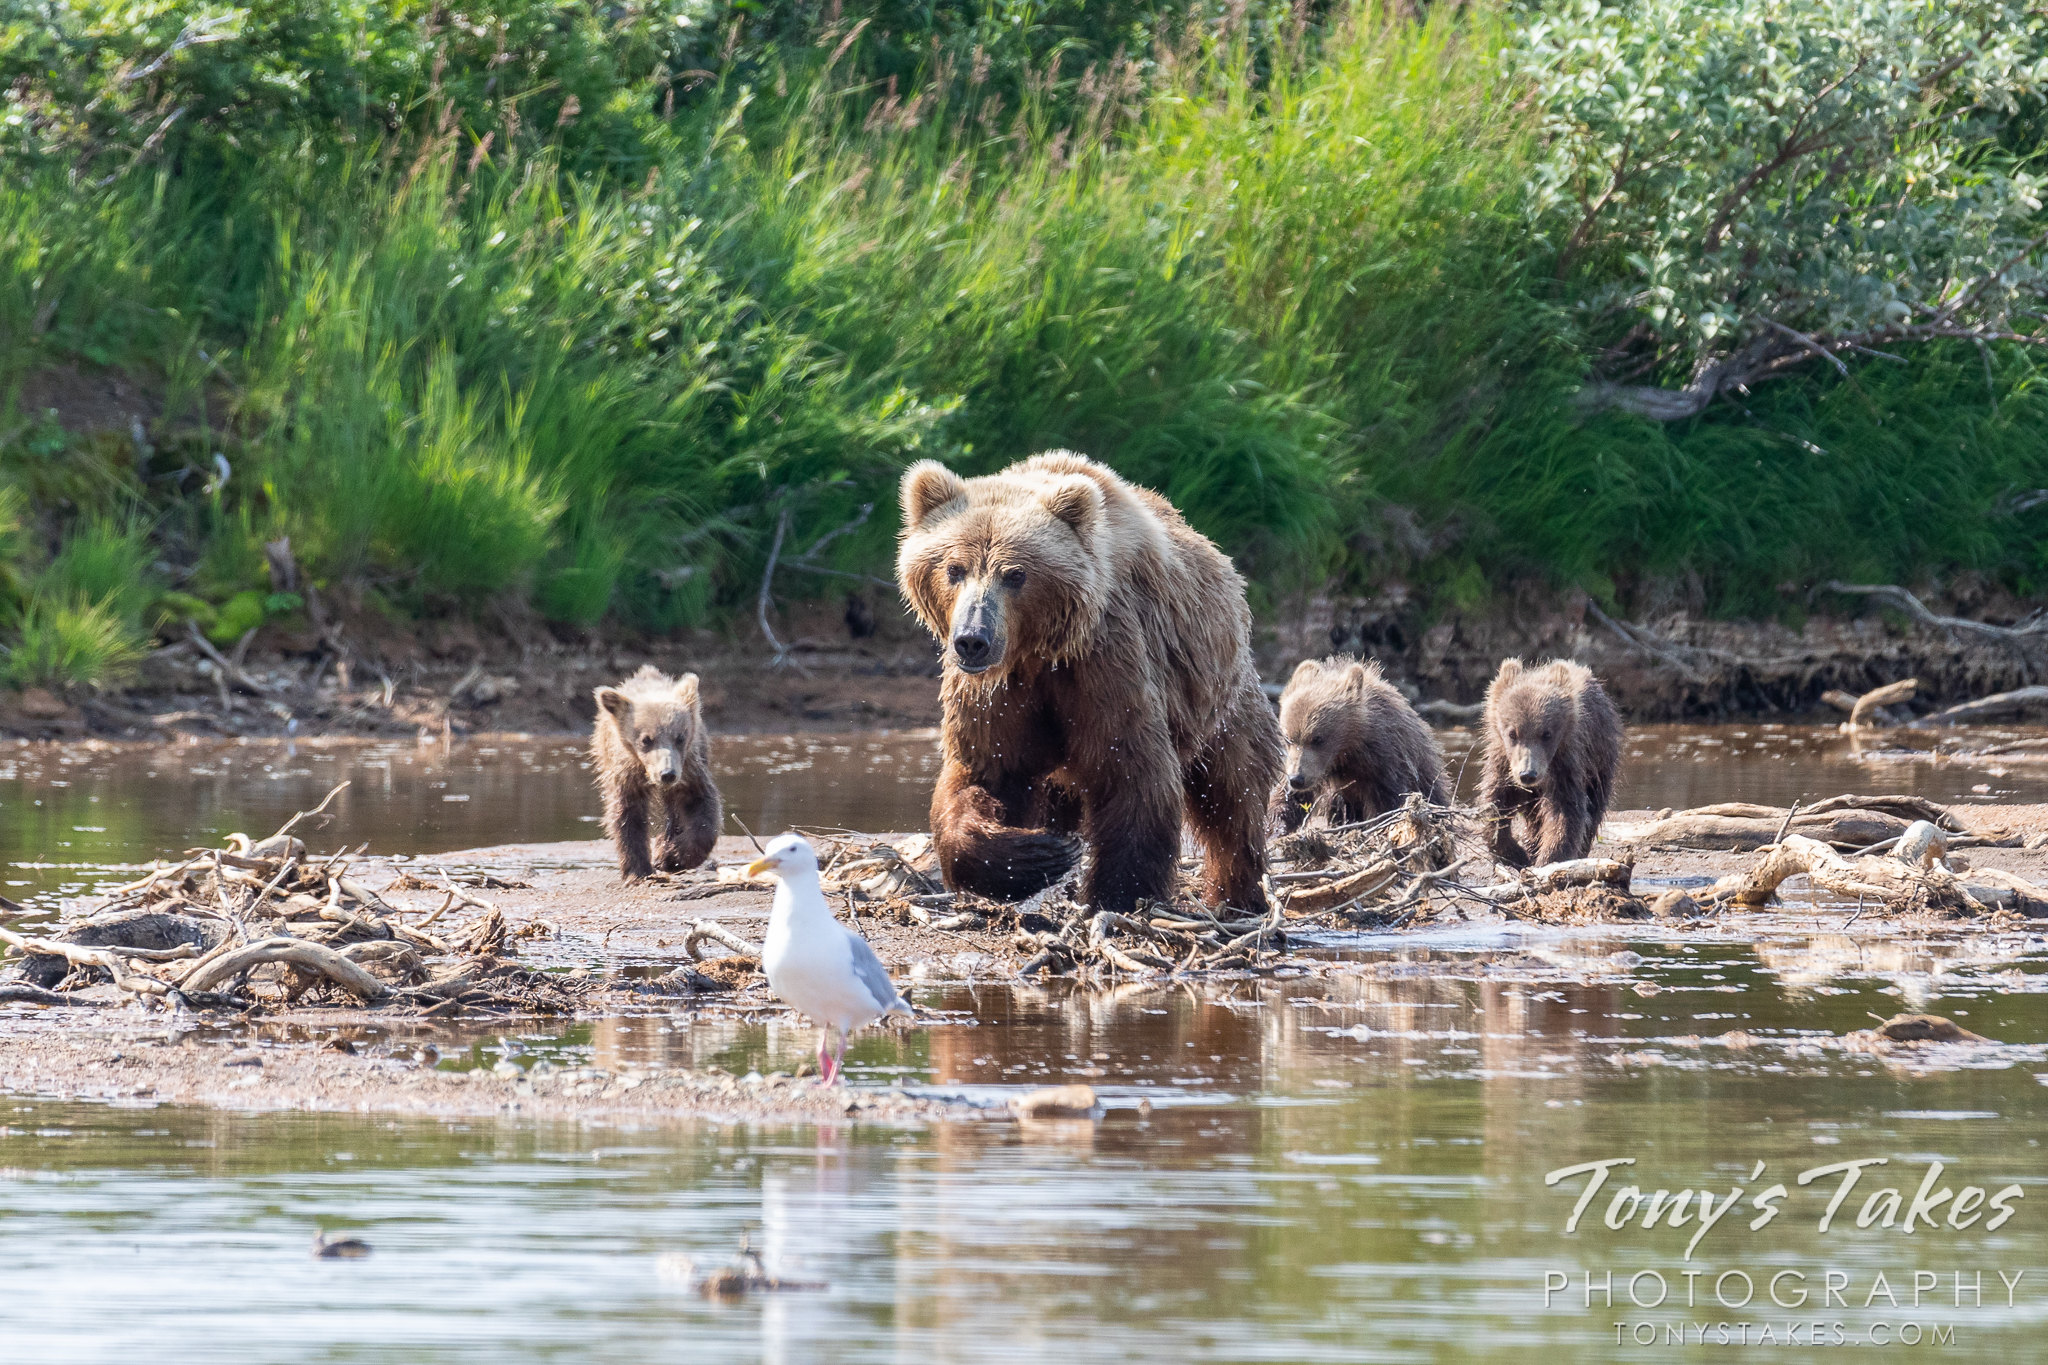 A brown bear sow leads her three cubs in Katmai National Park and Preserve, Alaska. (© Tony's Takes)